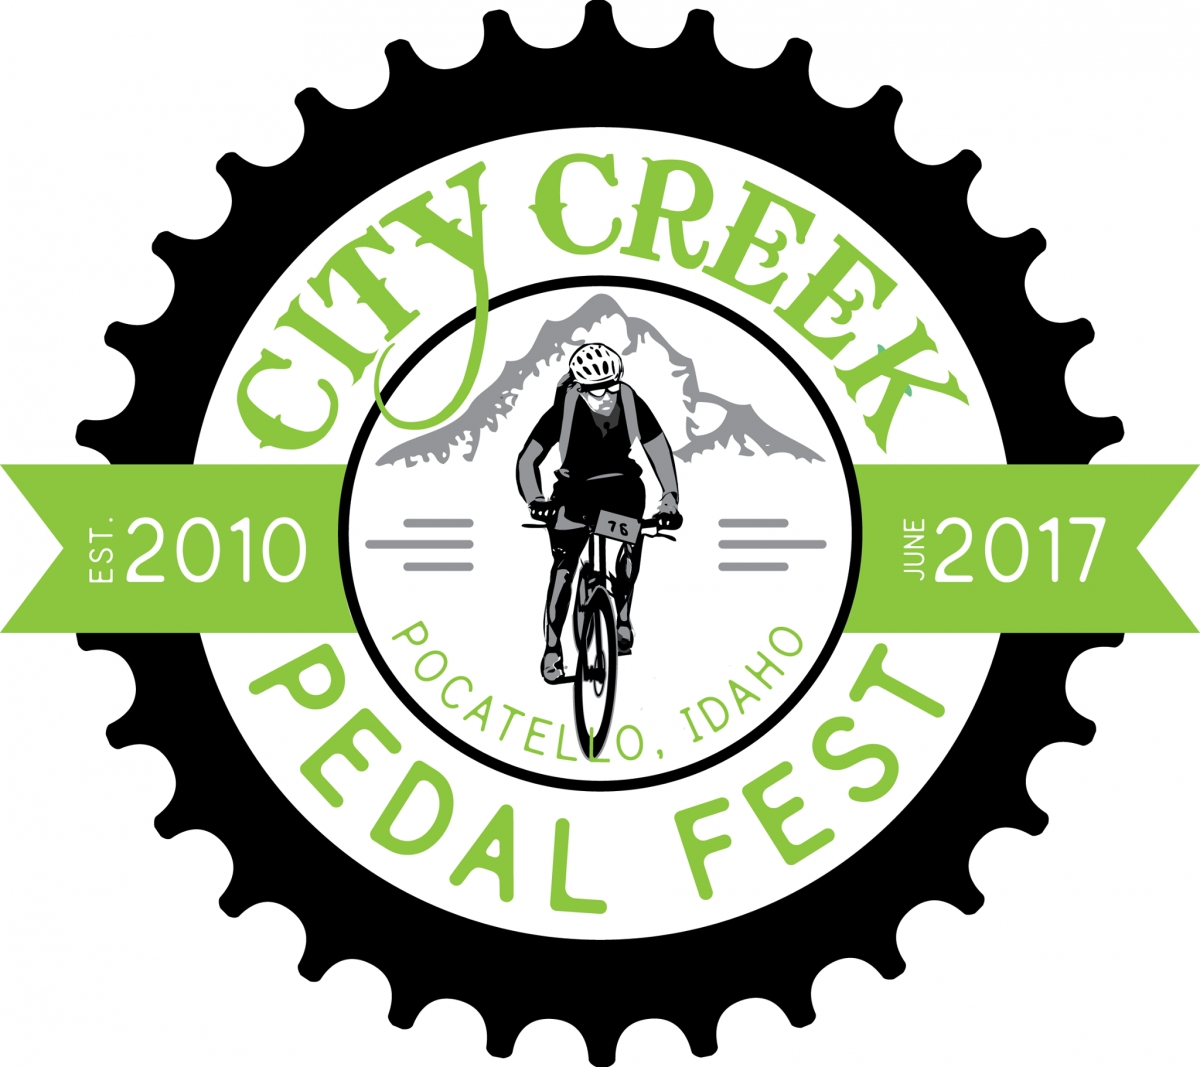 City Creek Pedal Fest